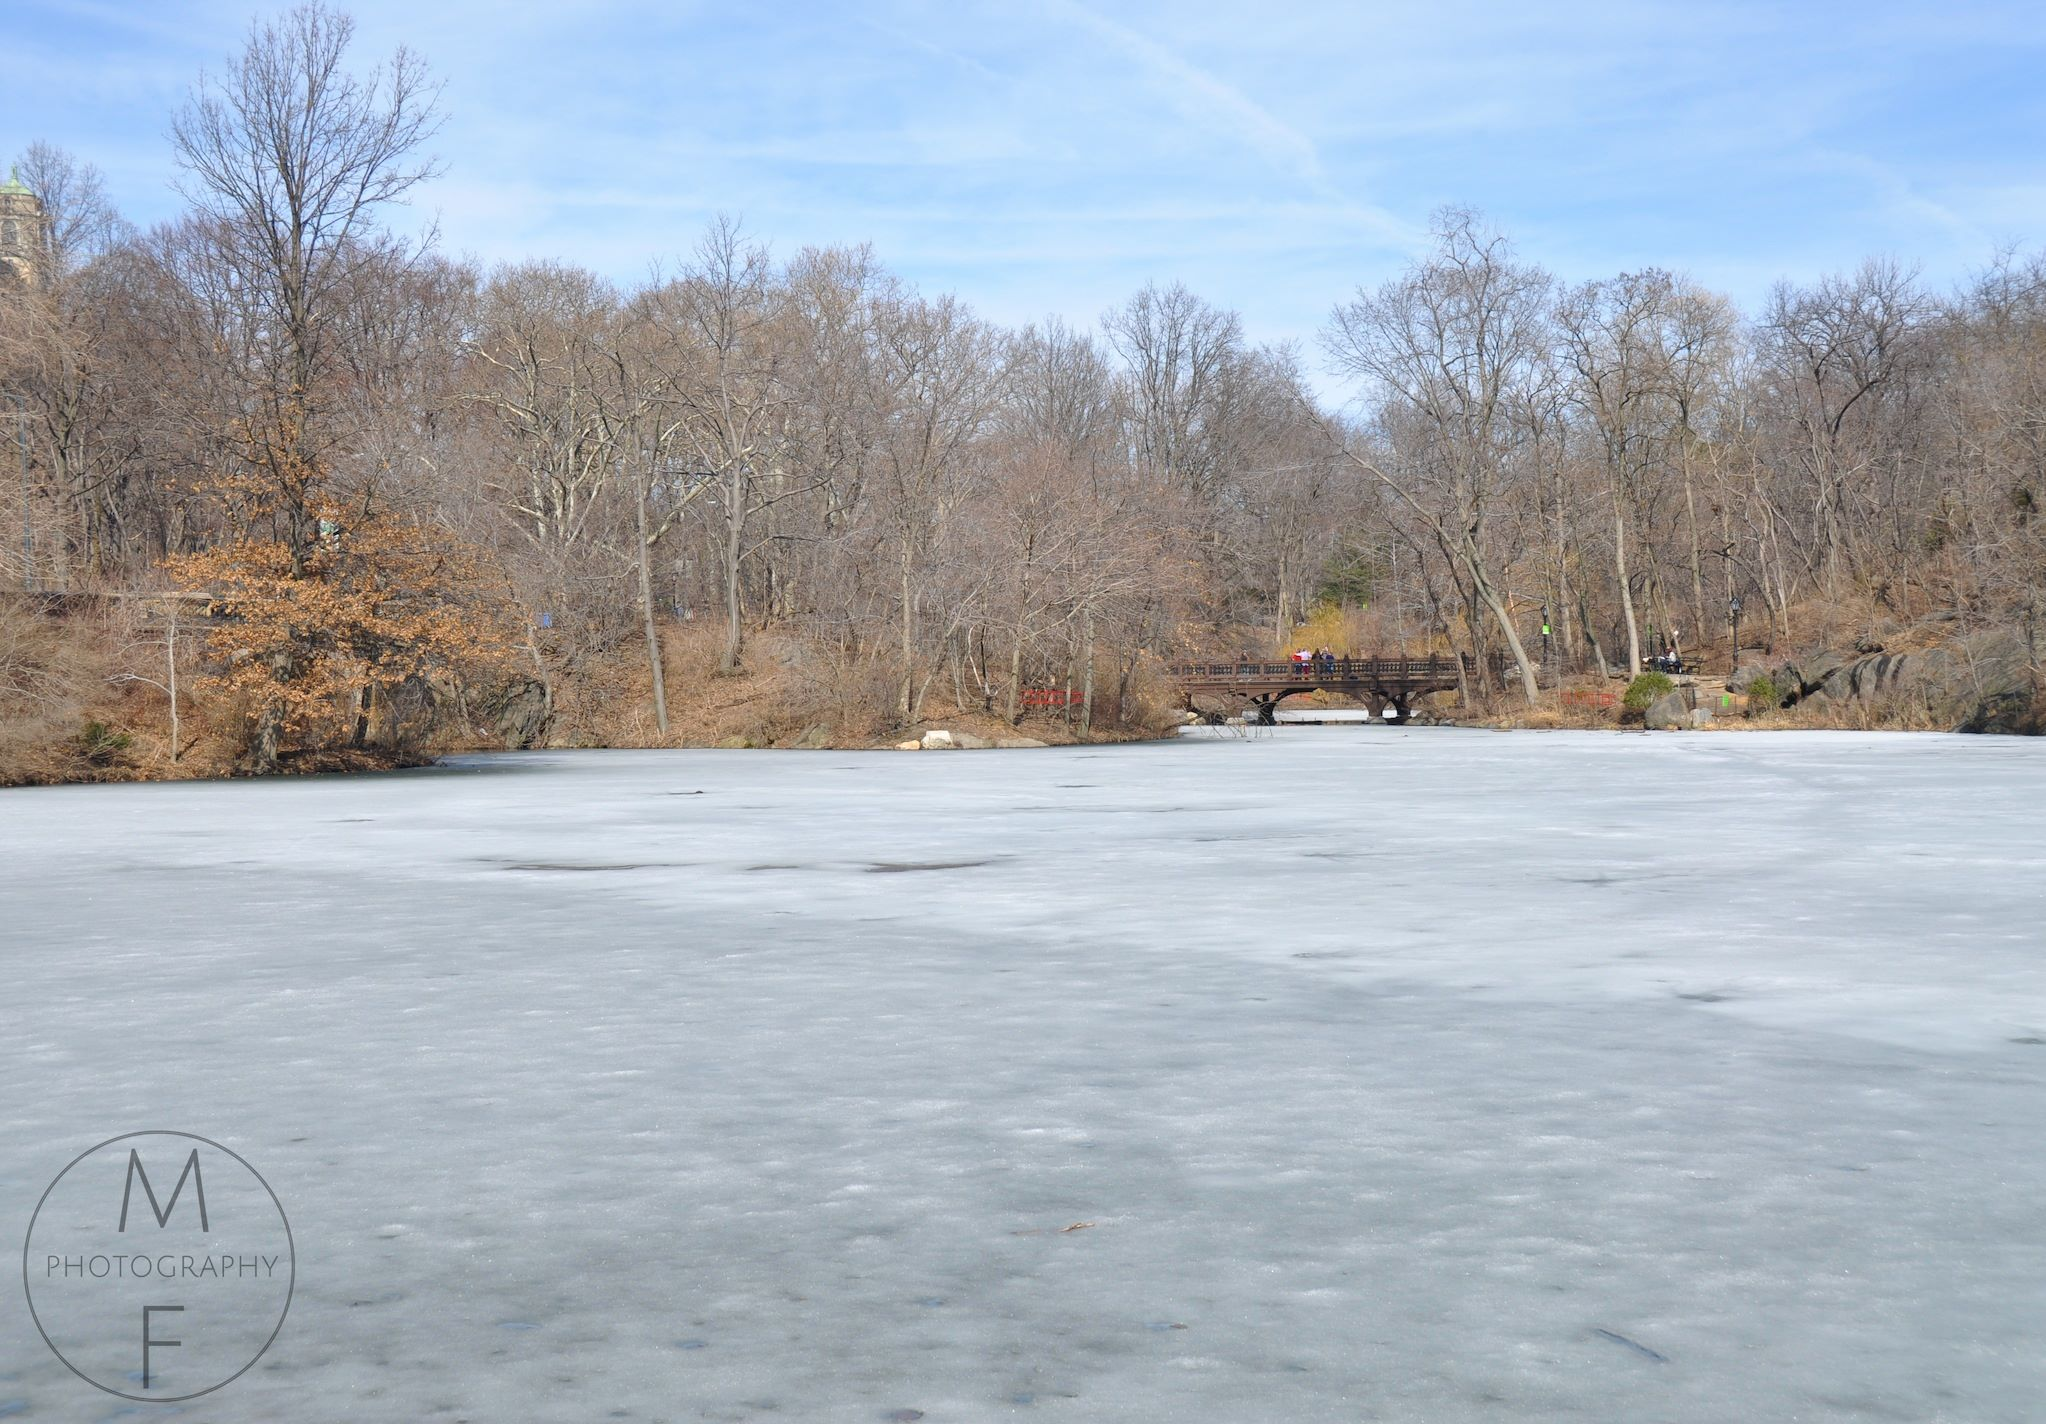 The Lake The Week Before: Frozen